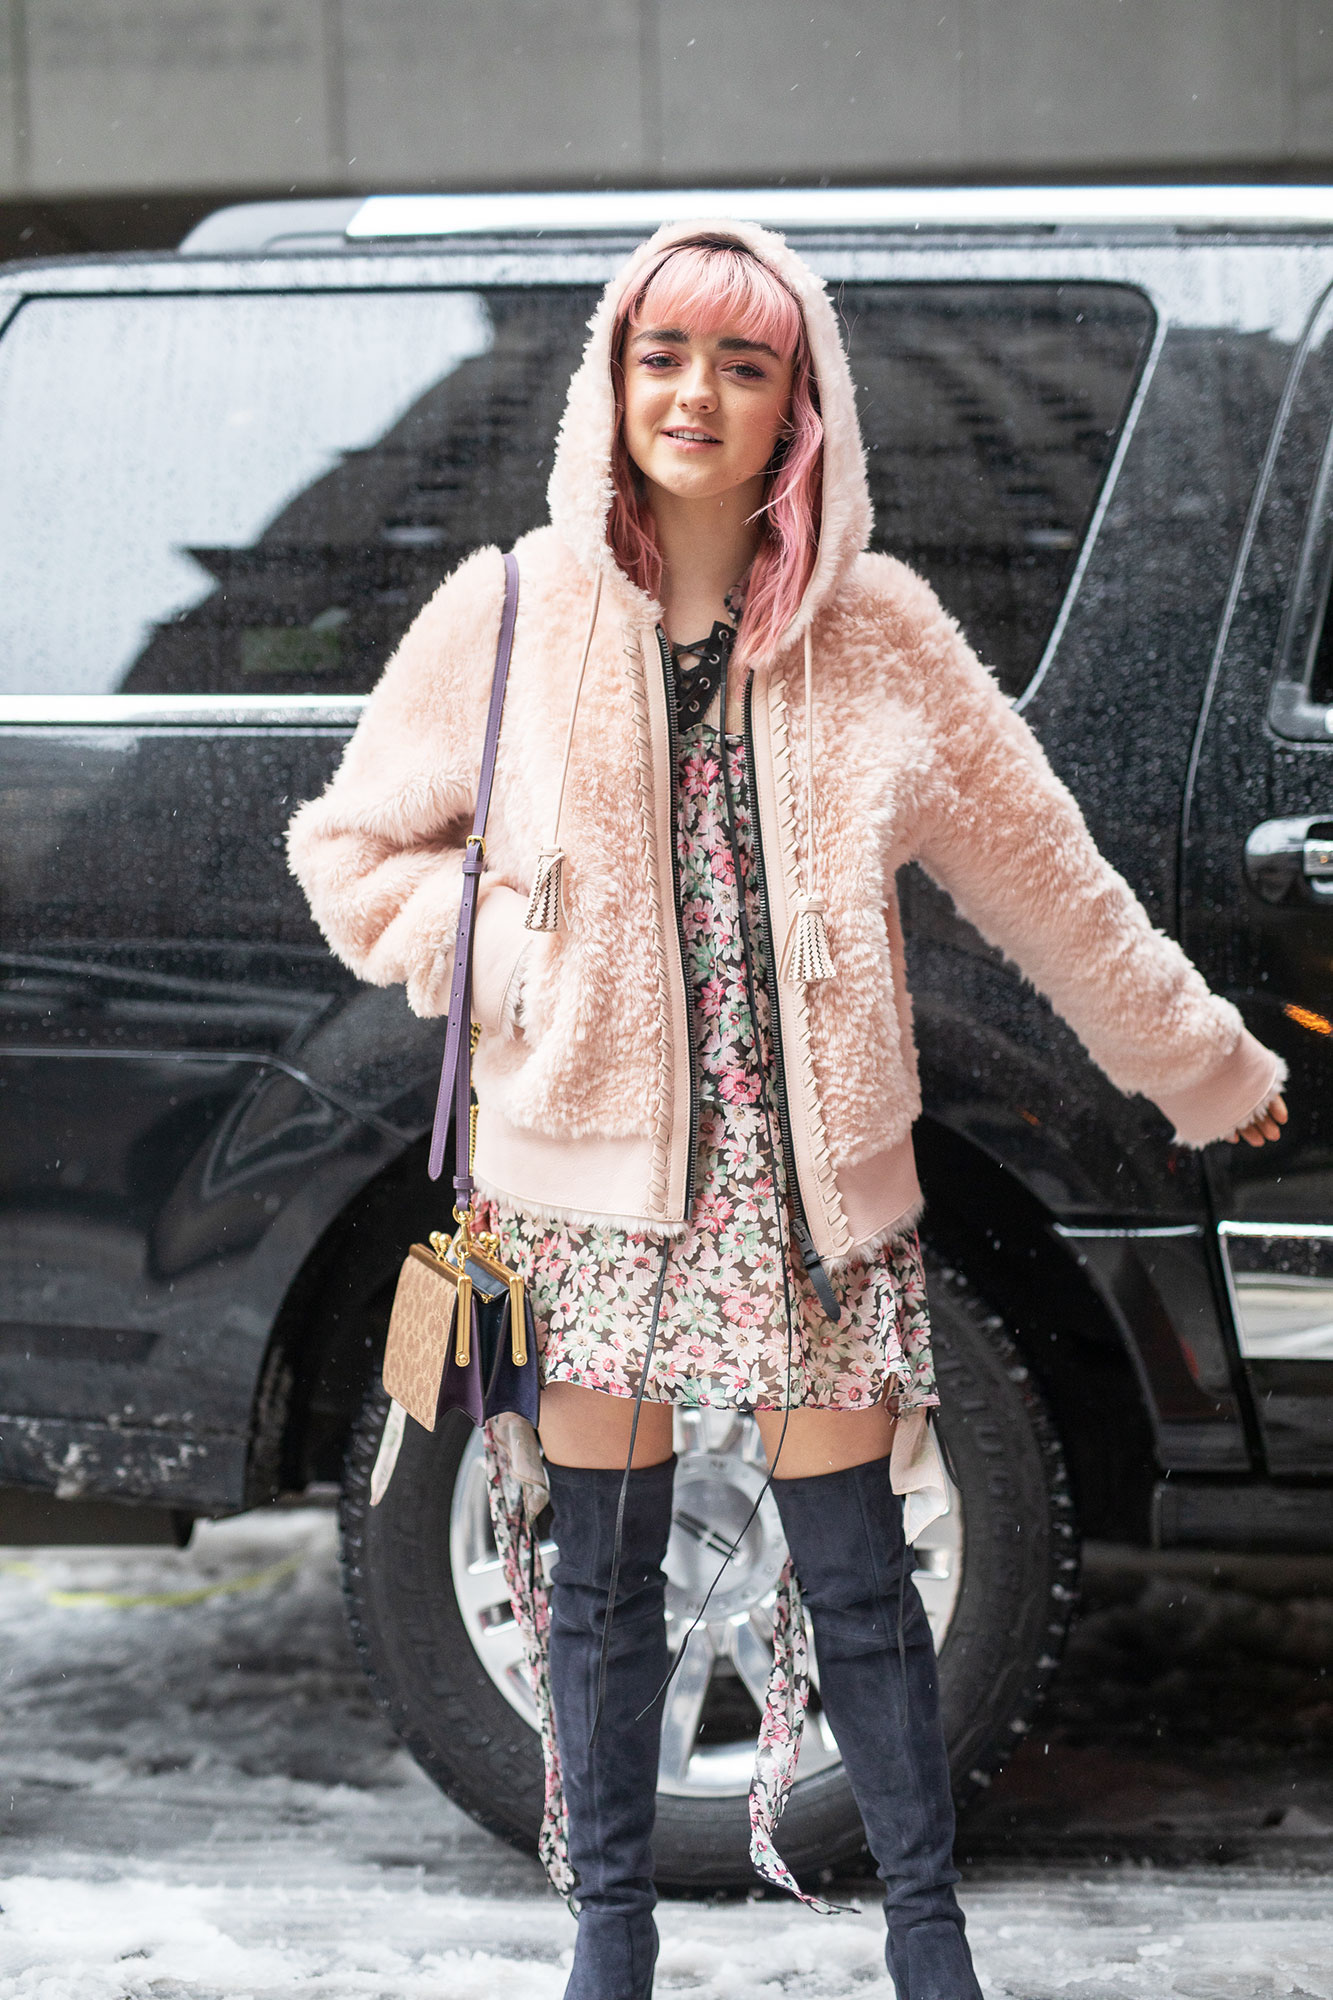 Maisie Williams - Braving the New York snow, the Game of Thrones actress wore a floral dress with a fluffy pink coat and over-the-knee navy boots.